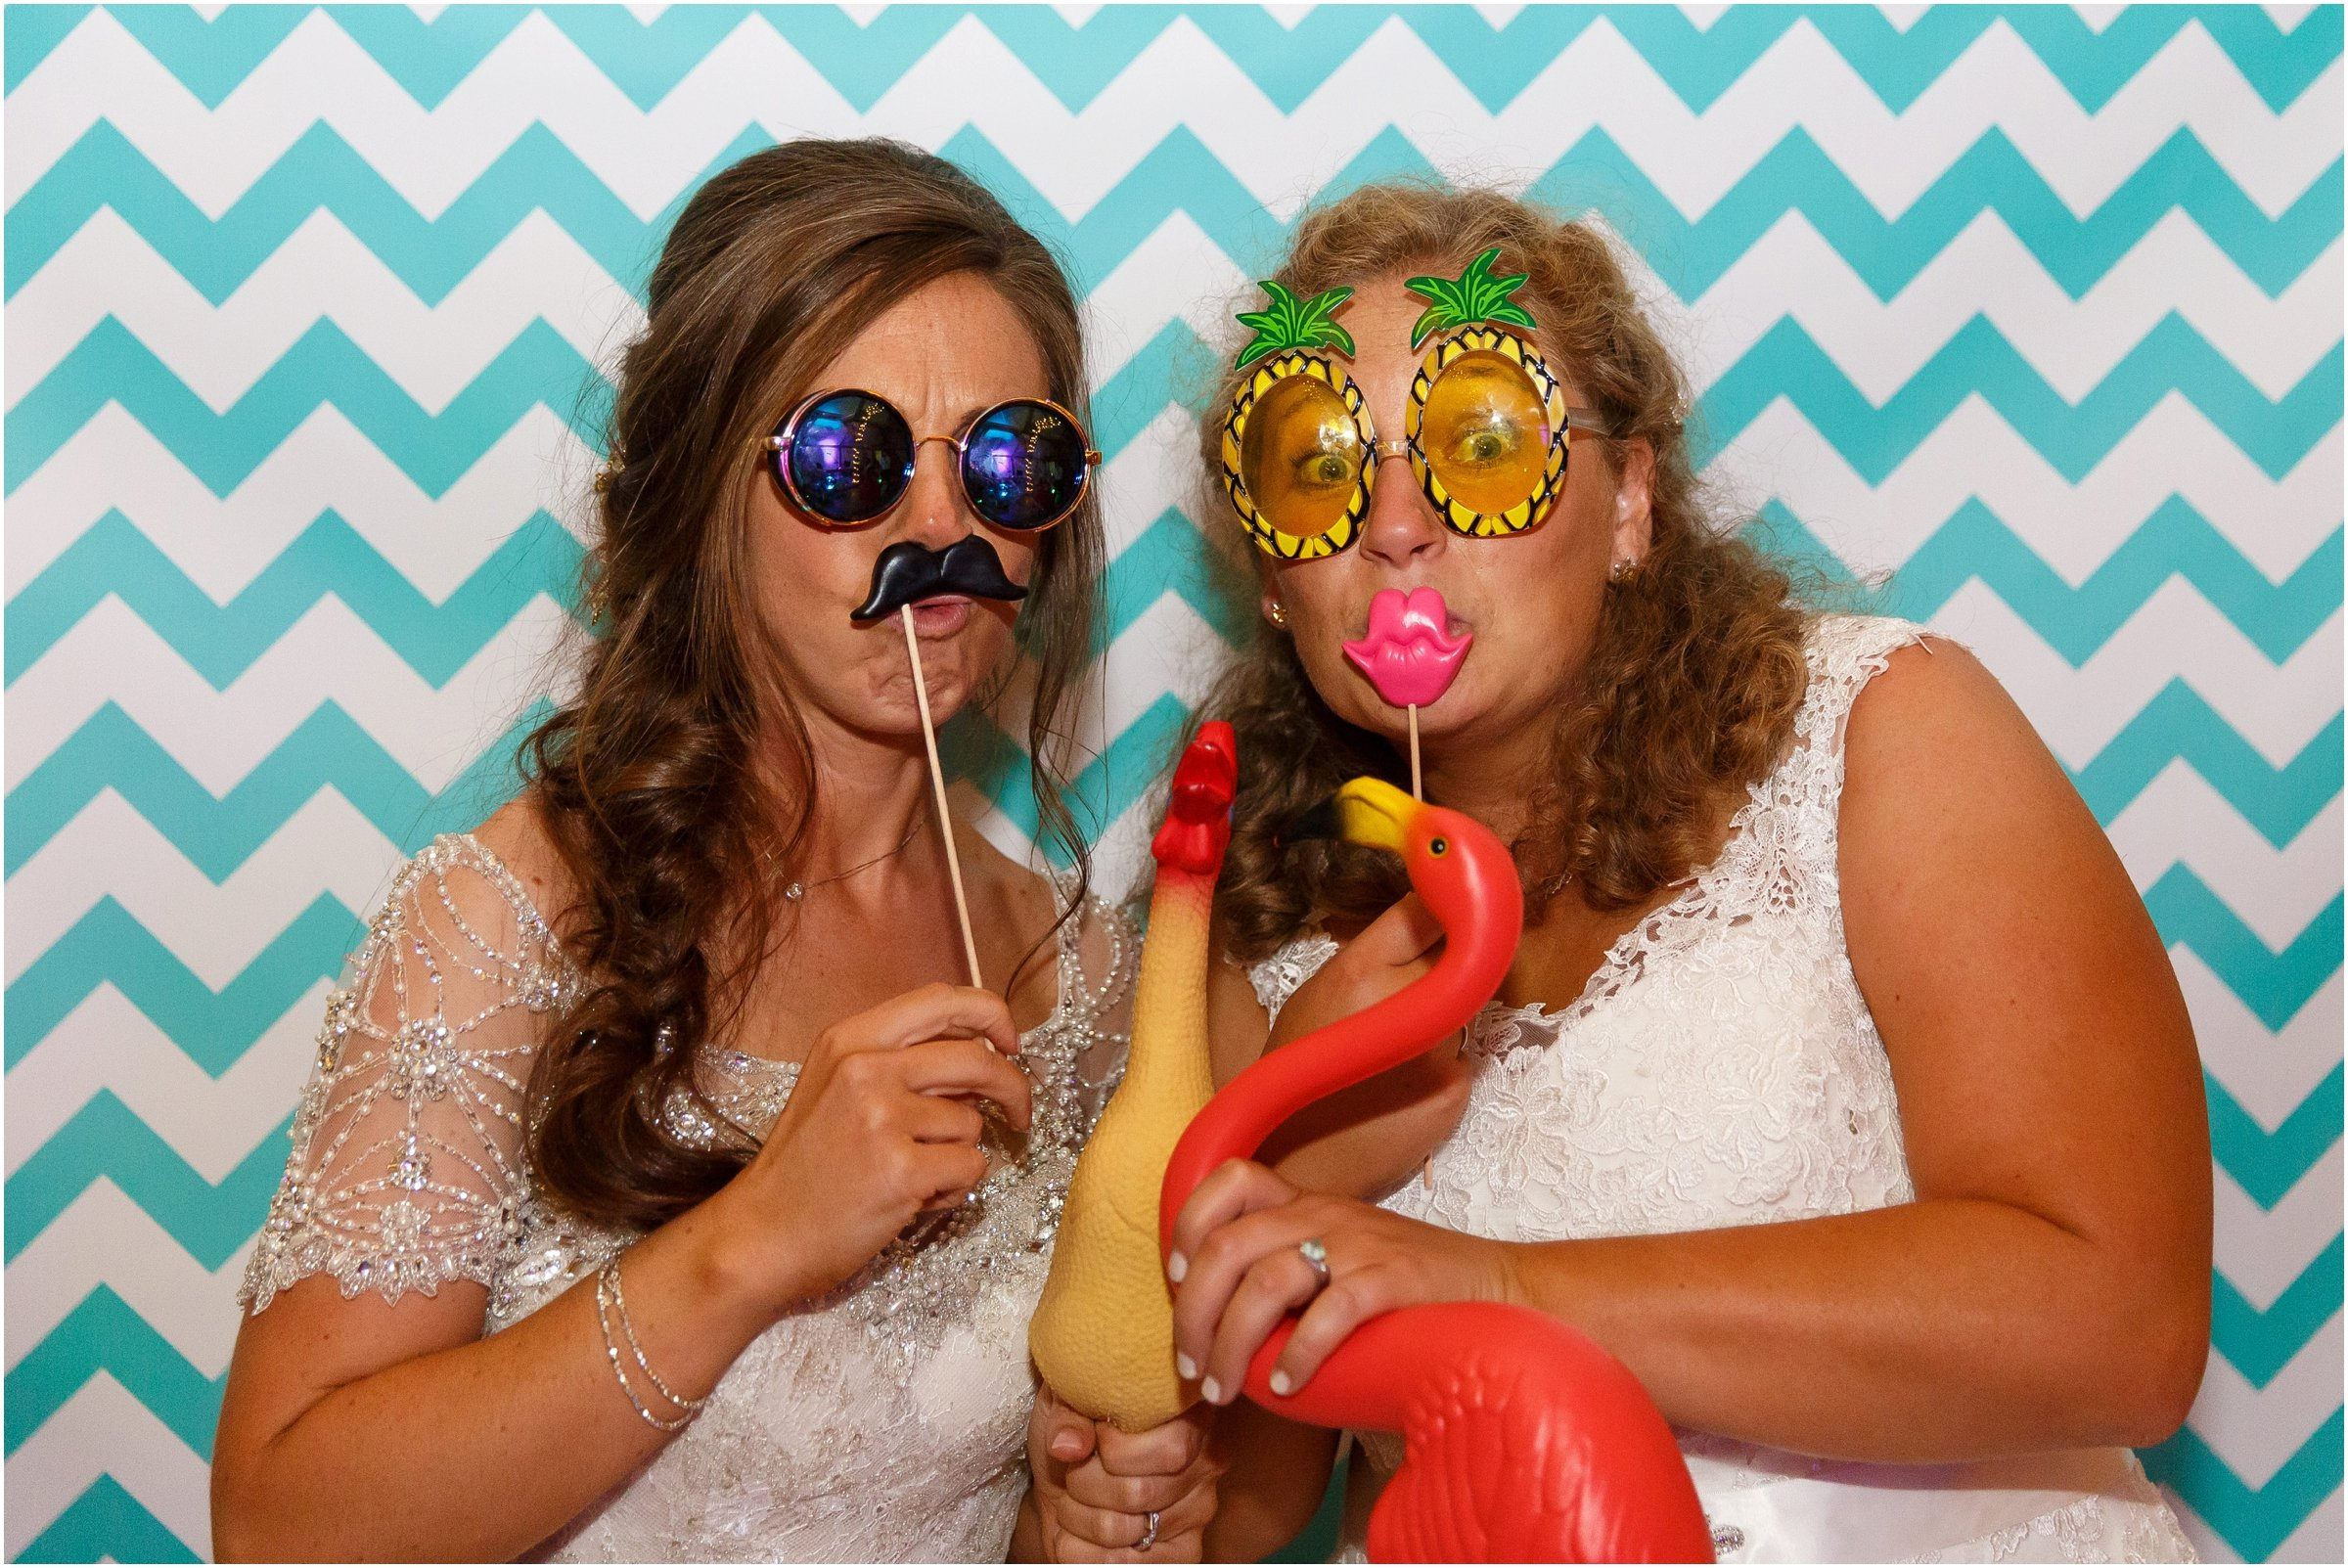 Photos from wedding Photo Booth